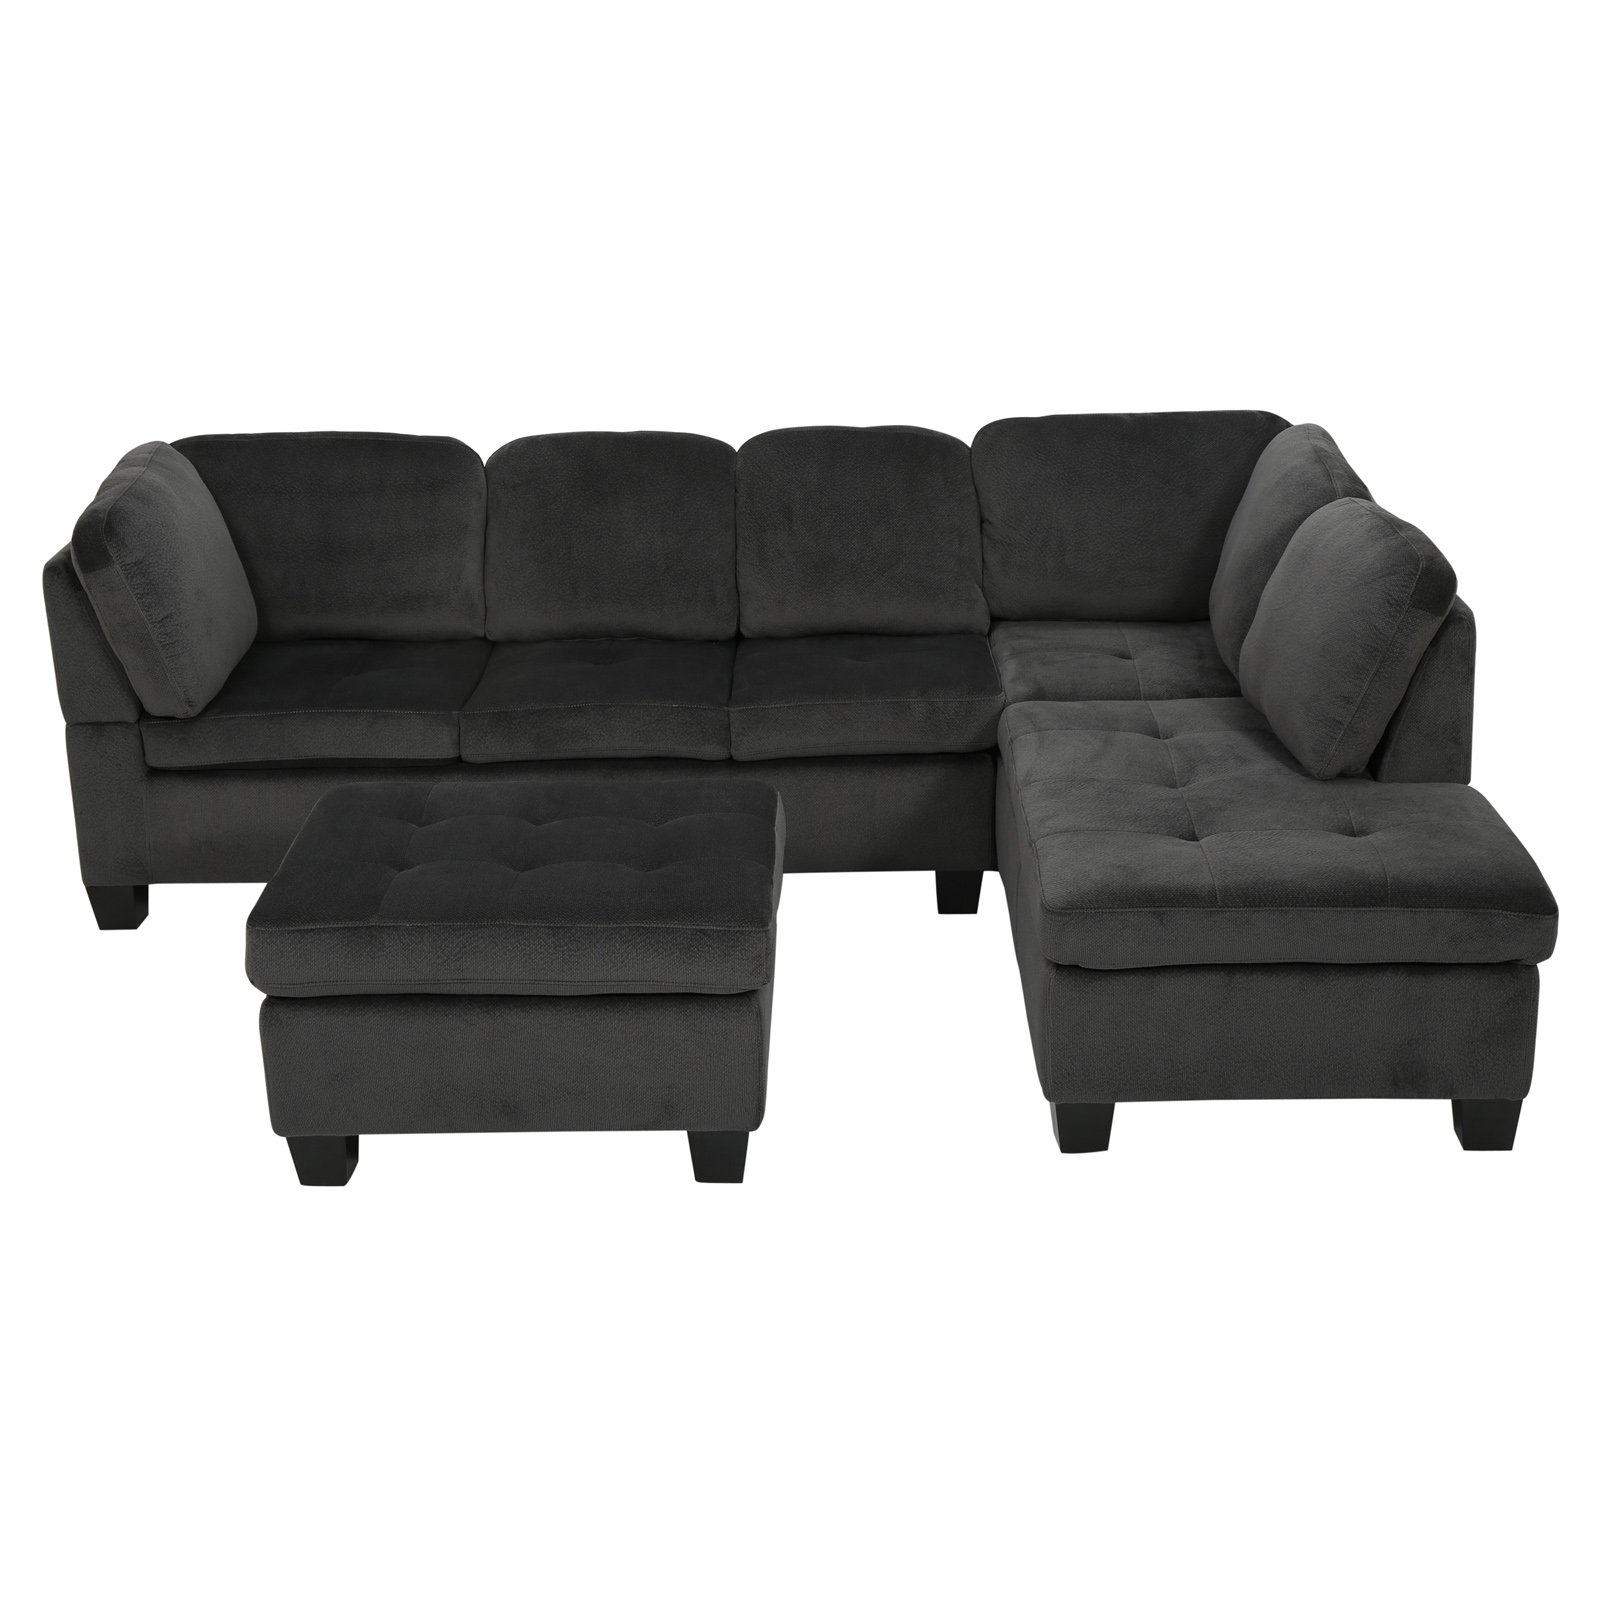 Best Selling Home Evan 3 Piece Sectional Sofa